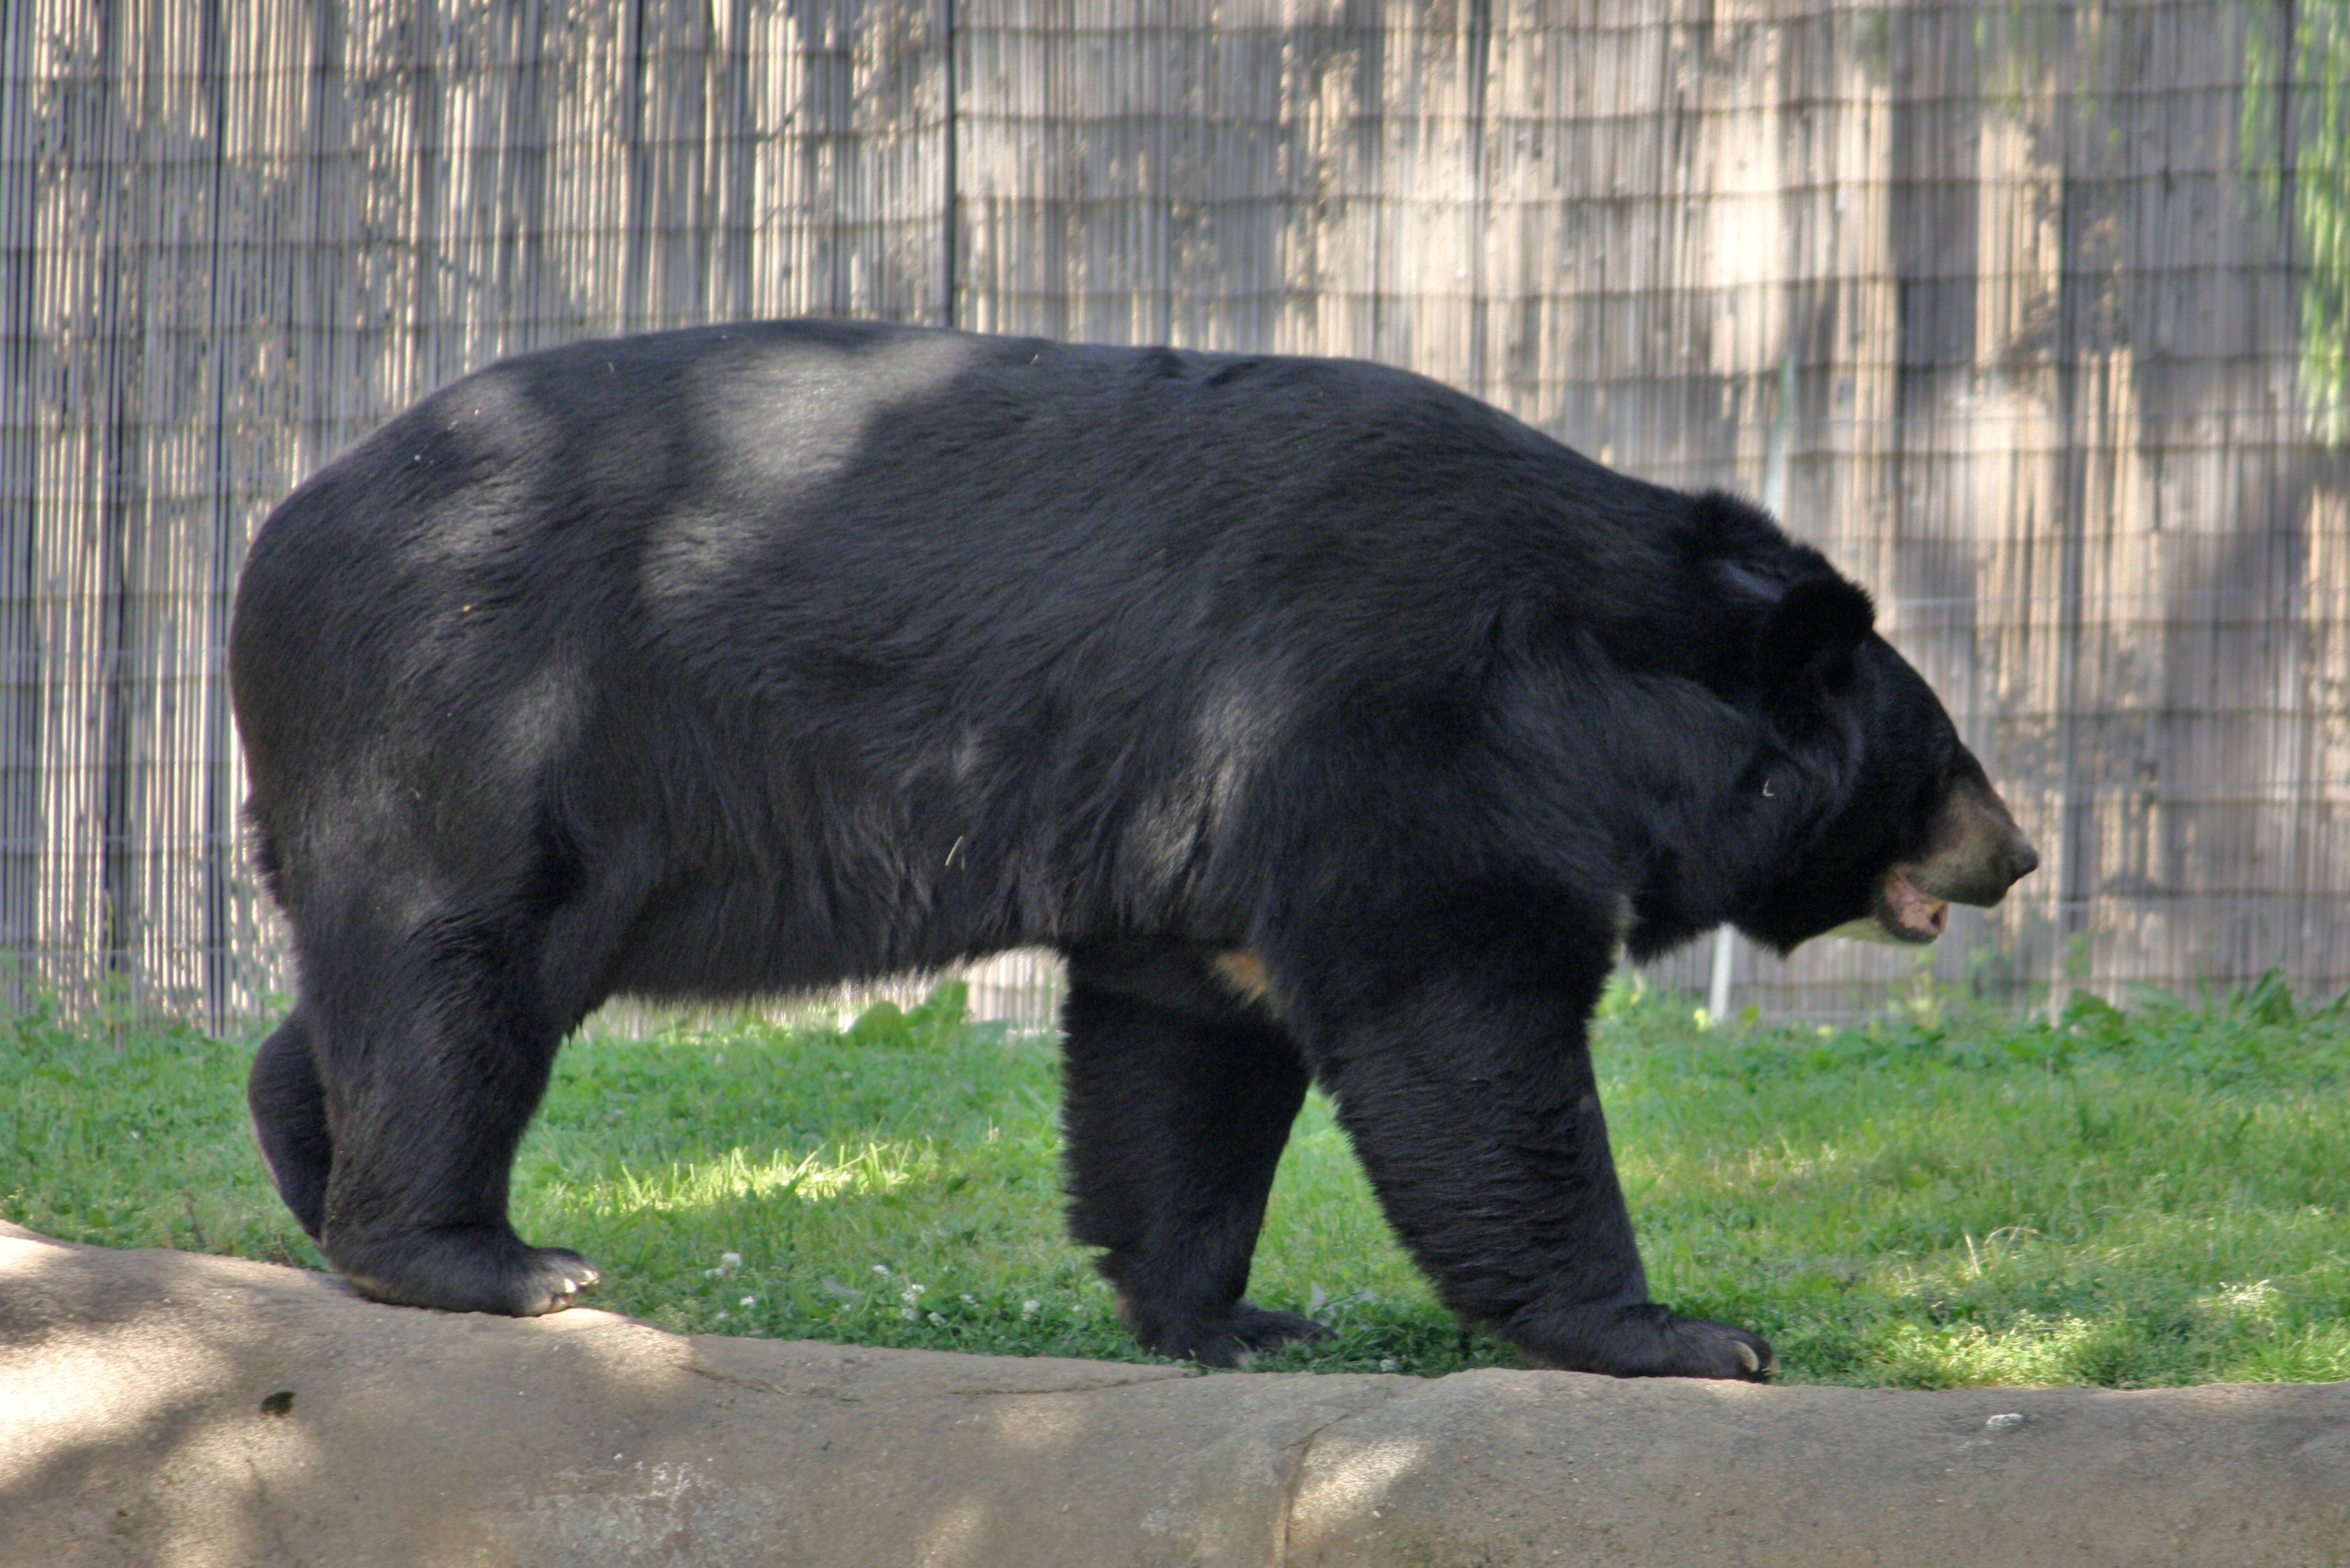 ... Black Bear Photo Gallery | Asiatic Black Bear asianUrsus thibetanus